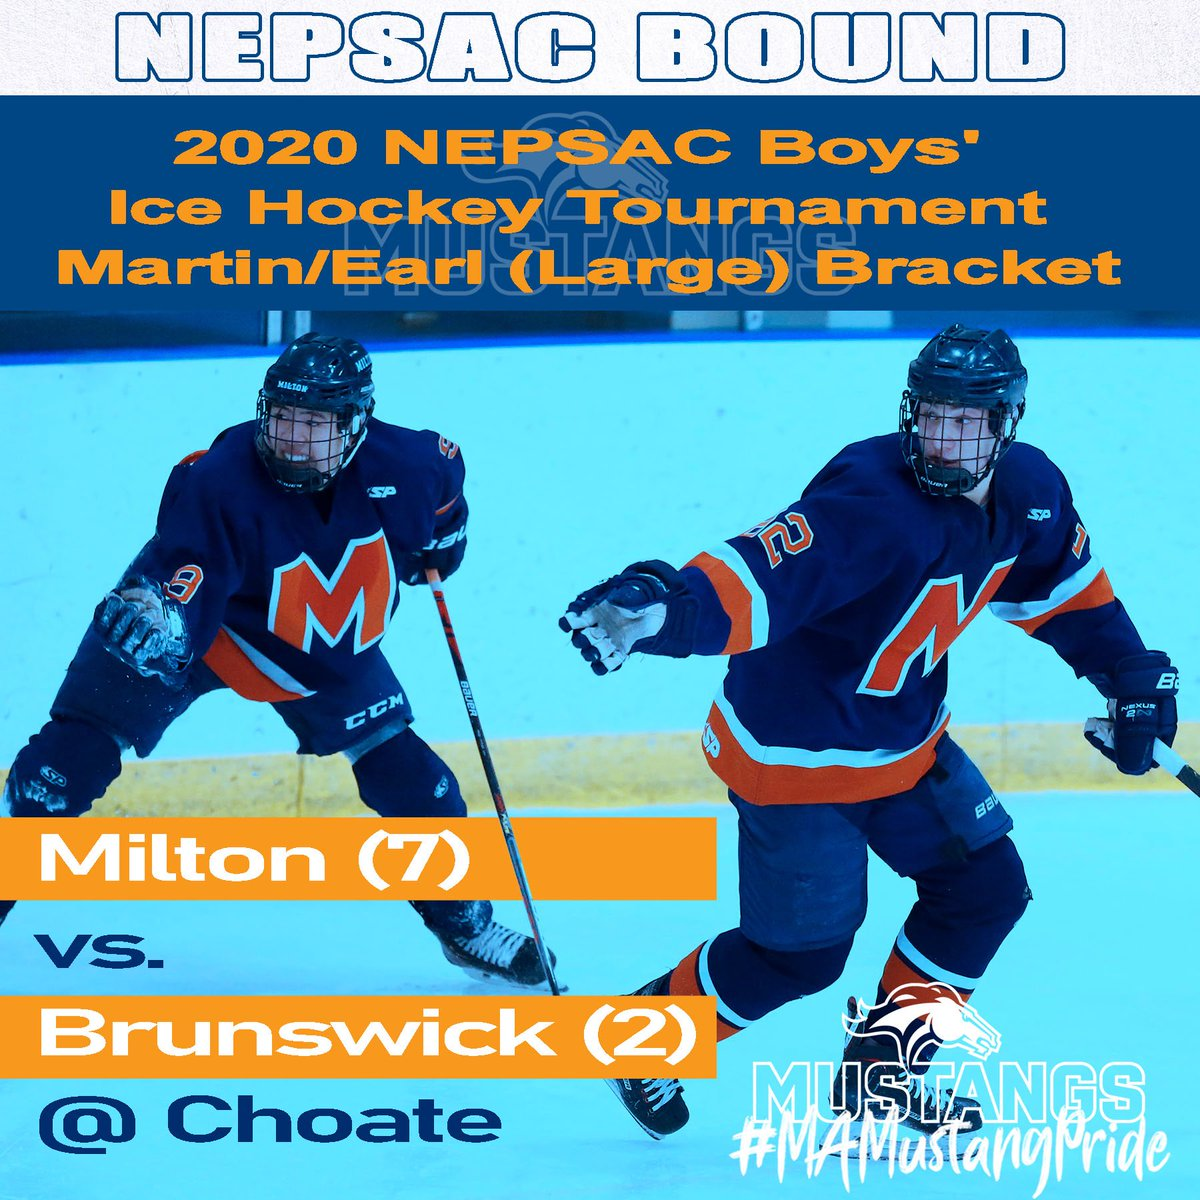 #7 @MiltonAcad_puck vs. #2 @WickPuck Wednesday March 4th 5:00PM at Wesleyan University!